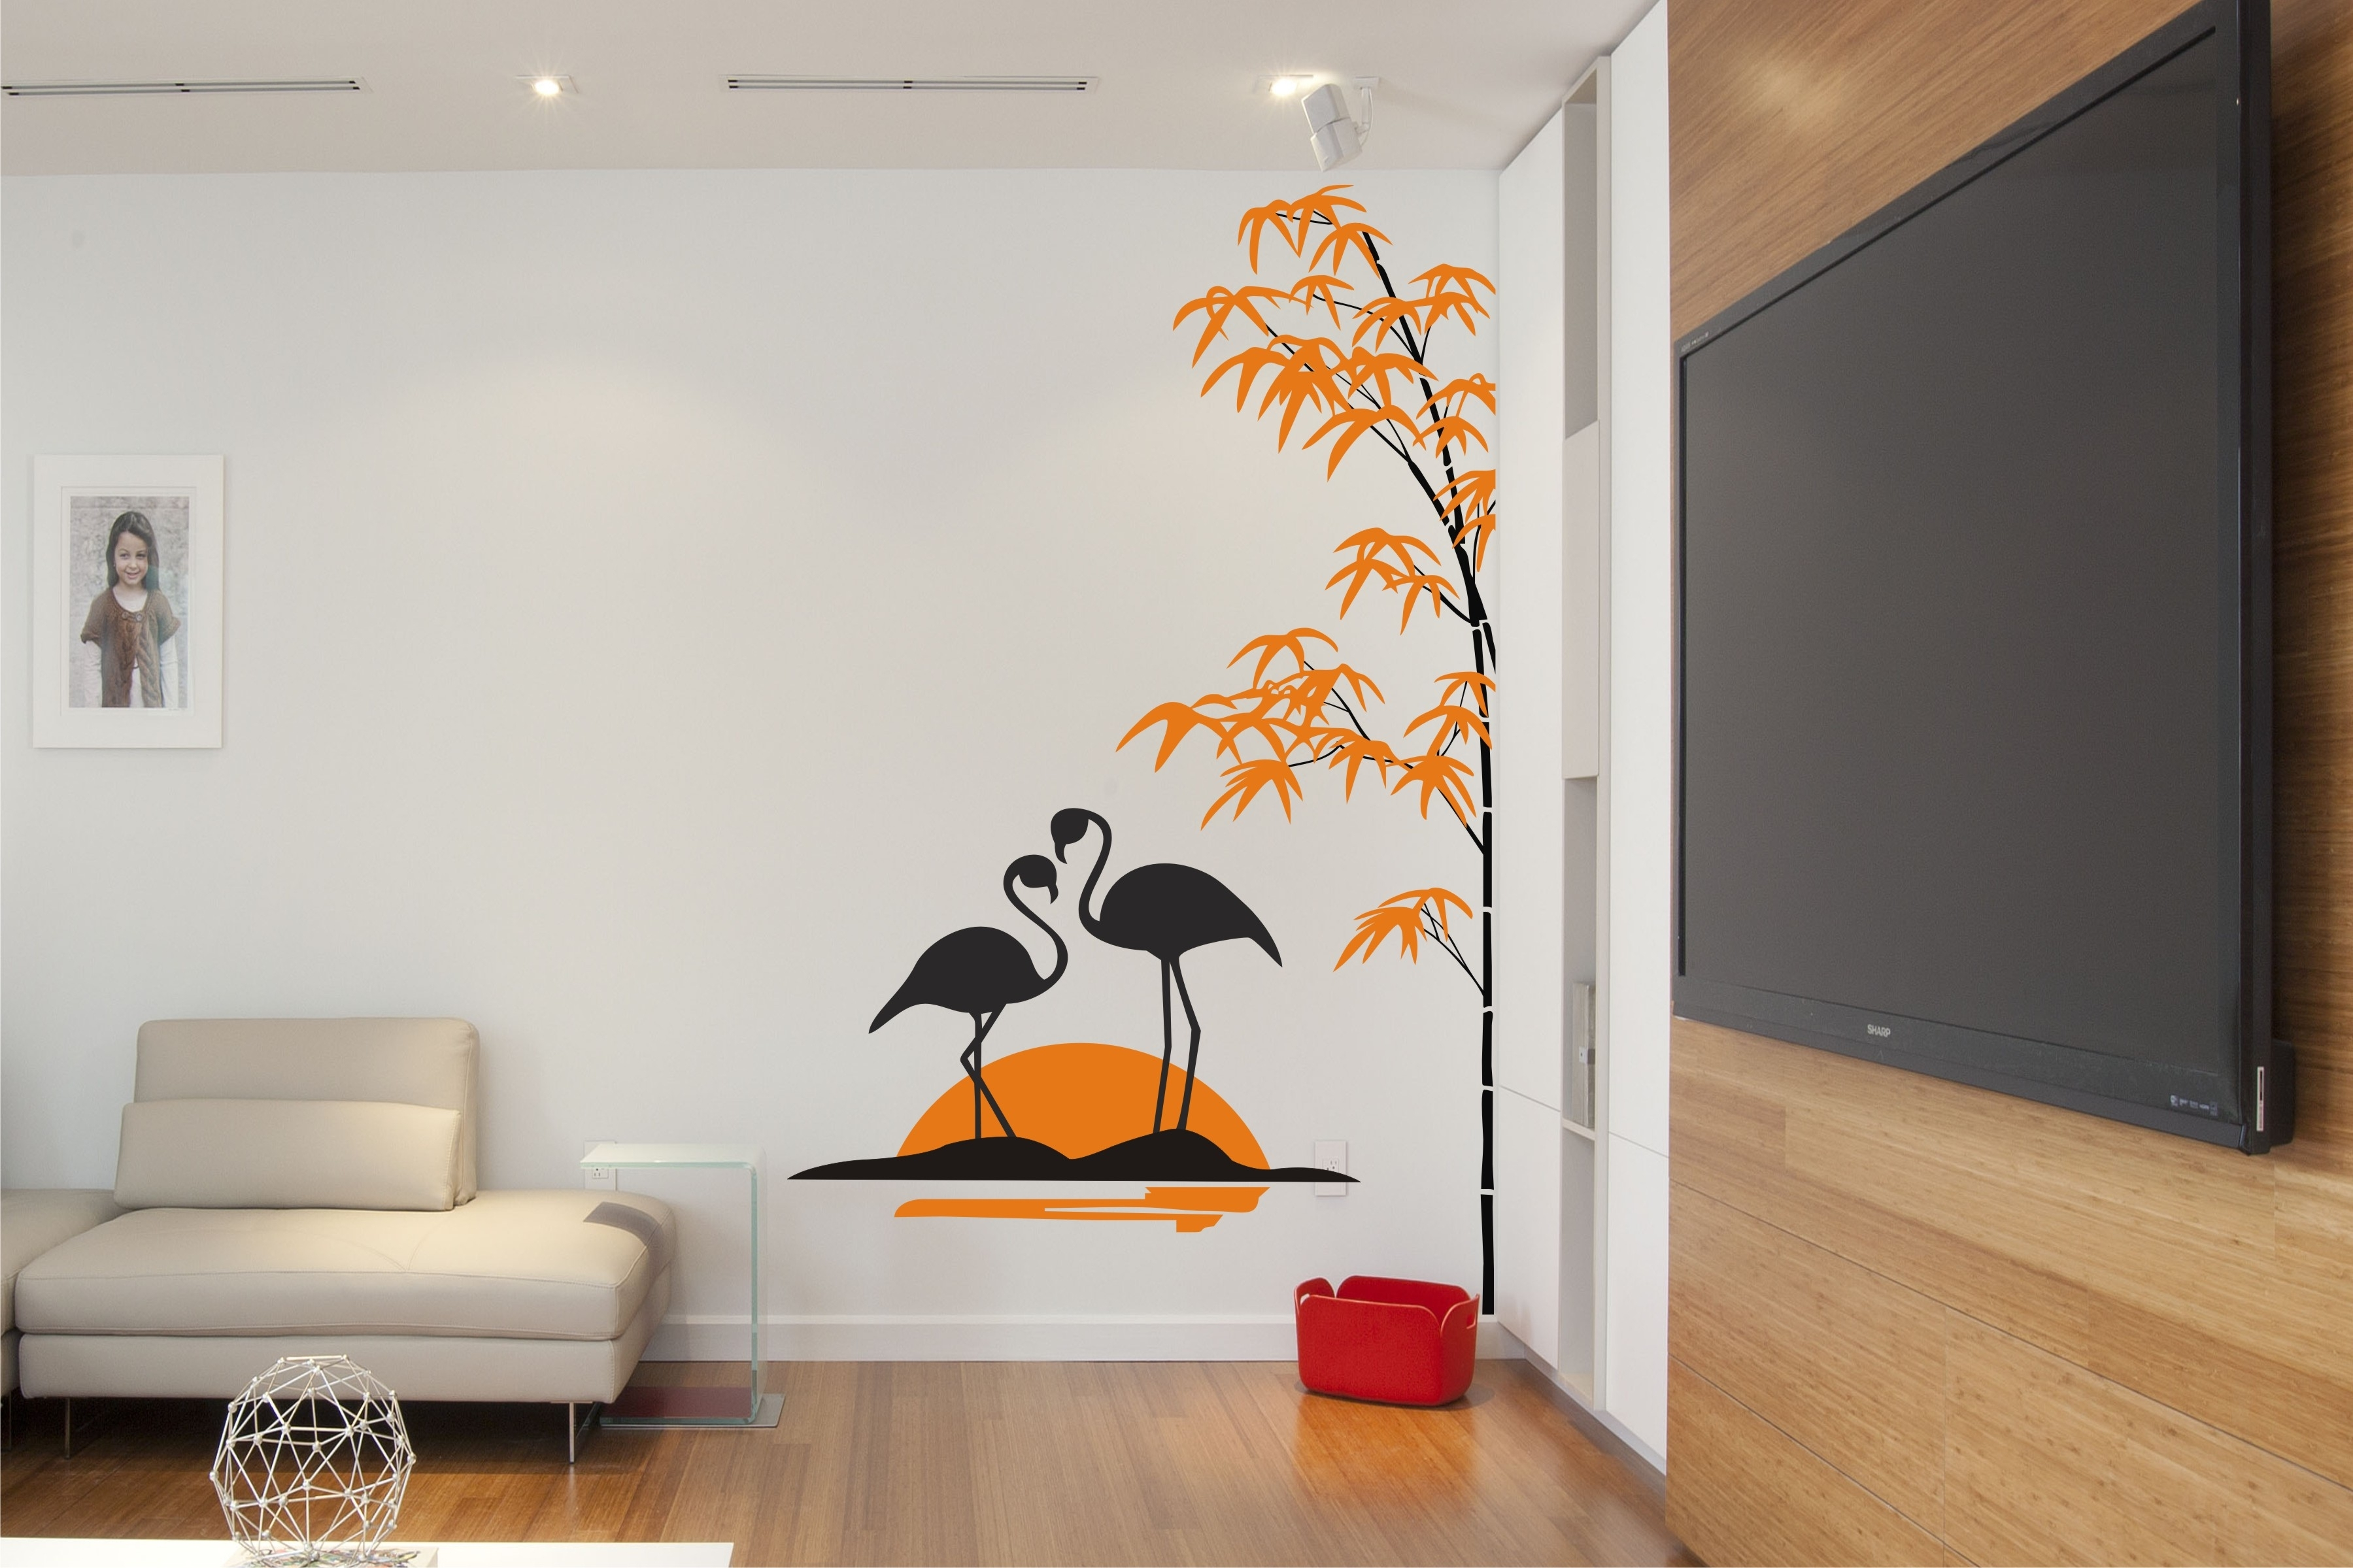 Swan With Bamboo Tree | Buy Customized Gift Solution At Artzolo Throughout Most Current Bamboo Wall Art (View 16 of 20)